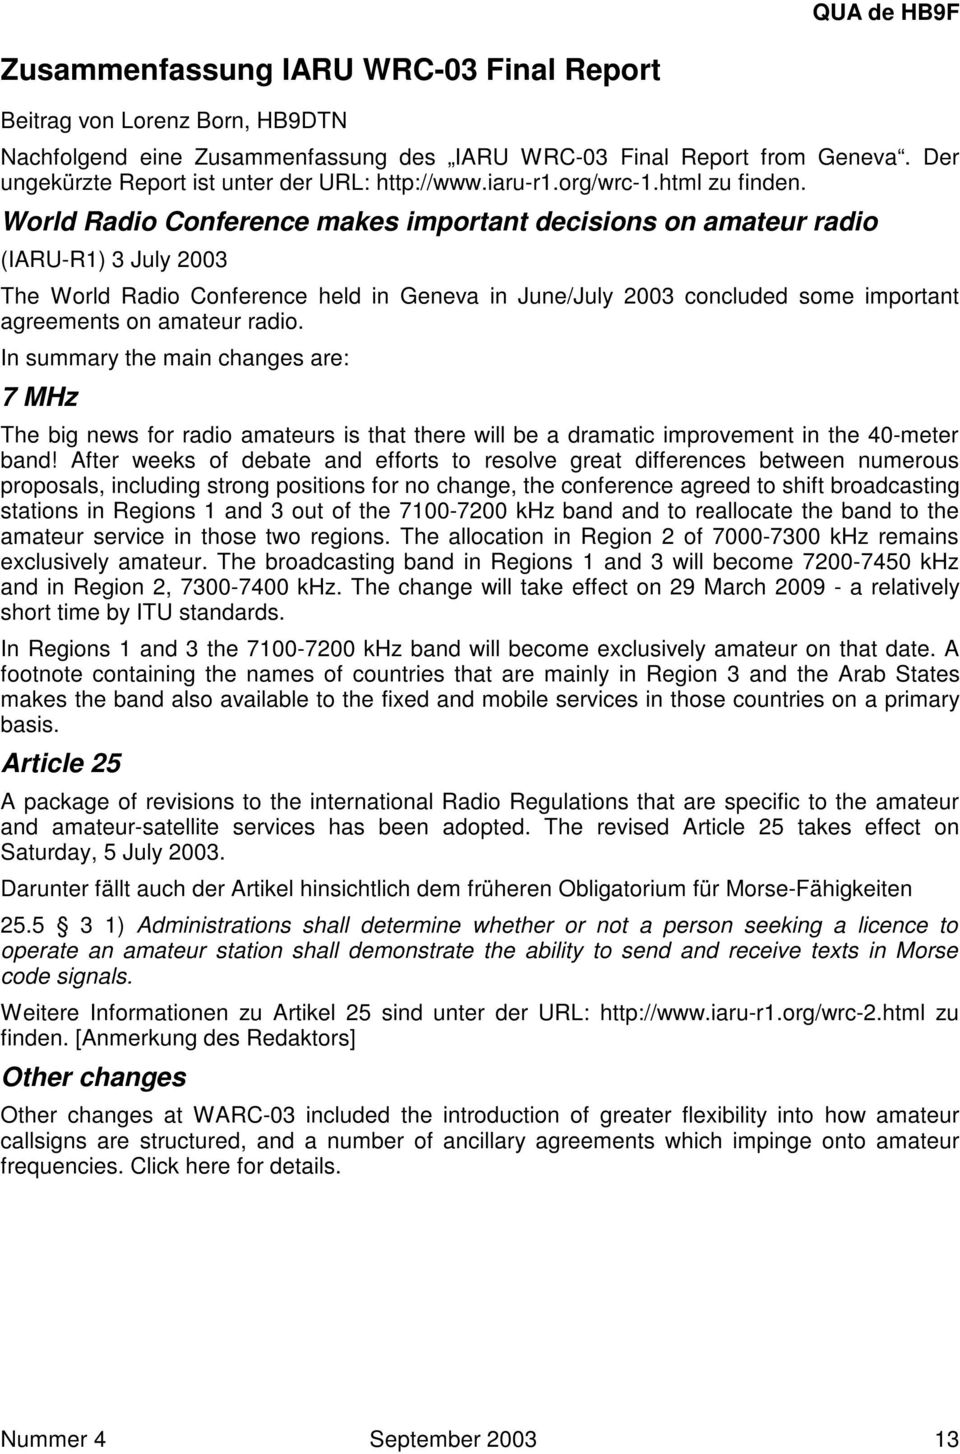 World Radio Conference makes important decisions on amateur radio (IARU-R1) 3 July 2003 The World Radio Conference held in Geneva in June/July 2003 concluded some important agreements on amateur